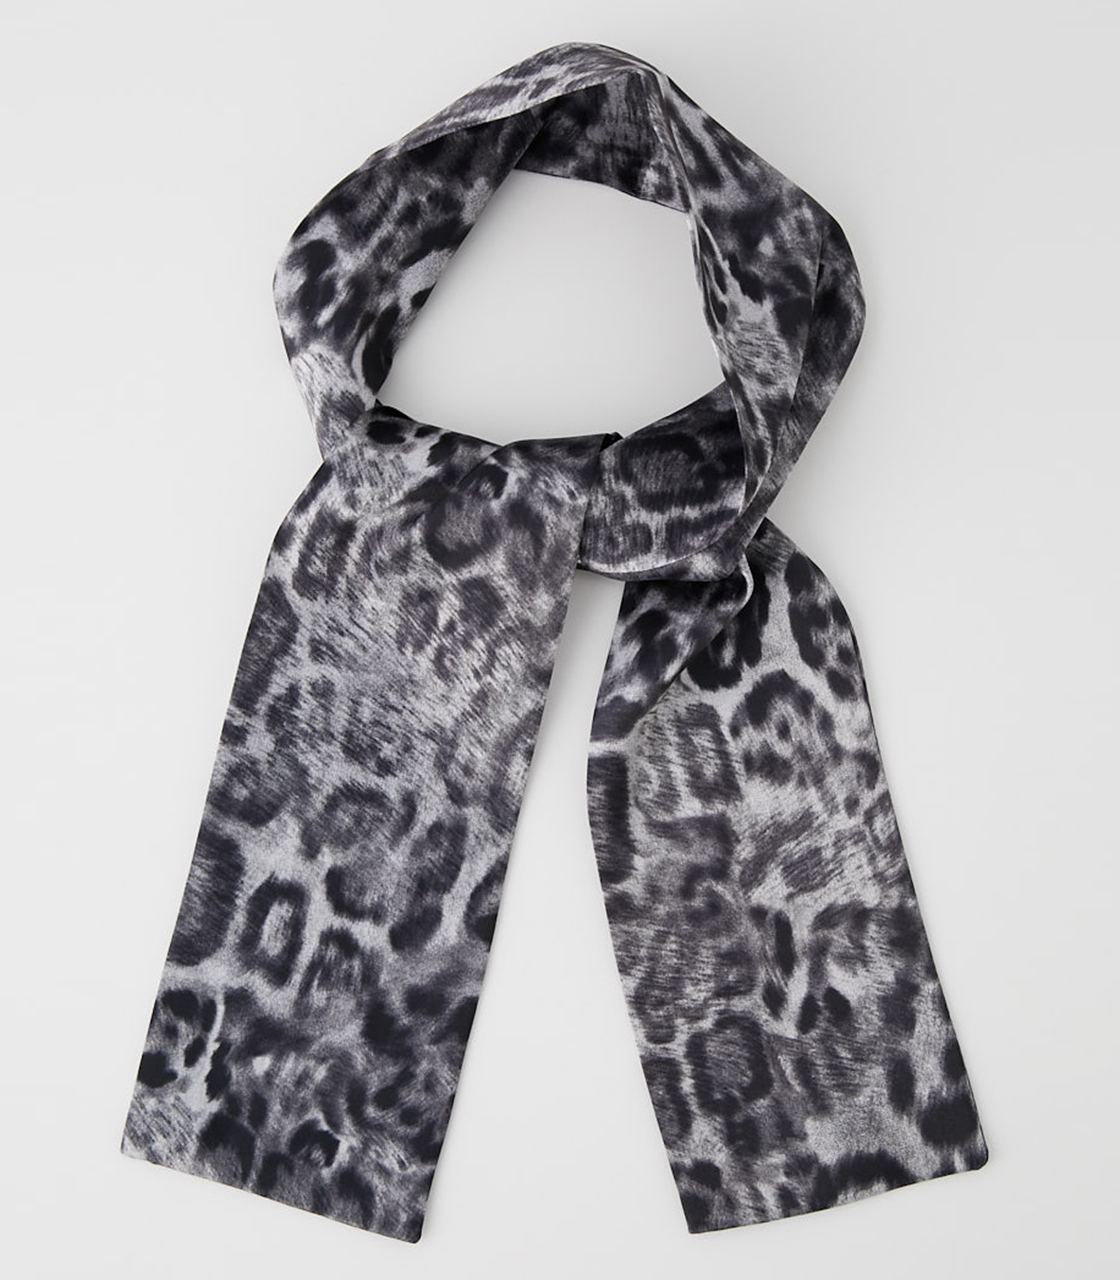 LEOPARD SCARF NECKLACE/レオパードスカーフネックレス 詳細画像 柄GRY 1